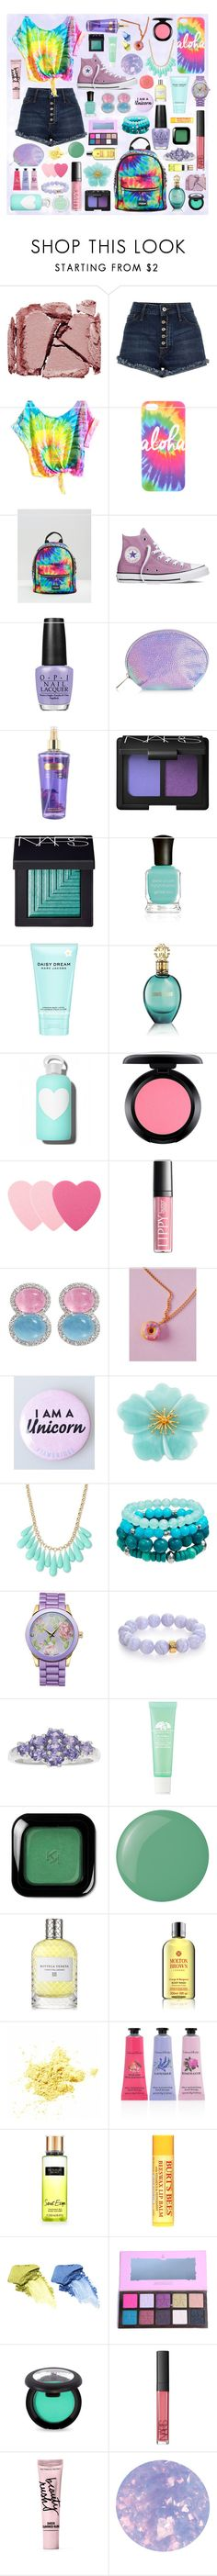 """Tie Dye"" by daisyxz ❤ liked on Polyvore featuring Surratt, Jaded, Converse, OPI, New Look, NARS Cosmetics, Deborah Lippmann, Marc Jacobs, Roberto Cavalli and bkr"